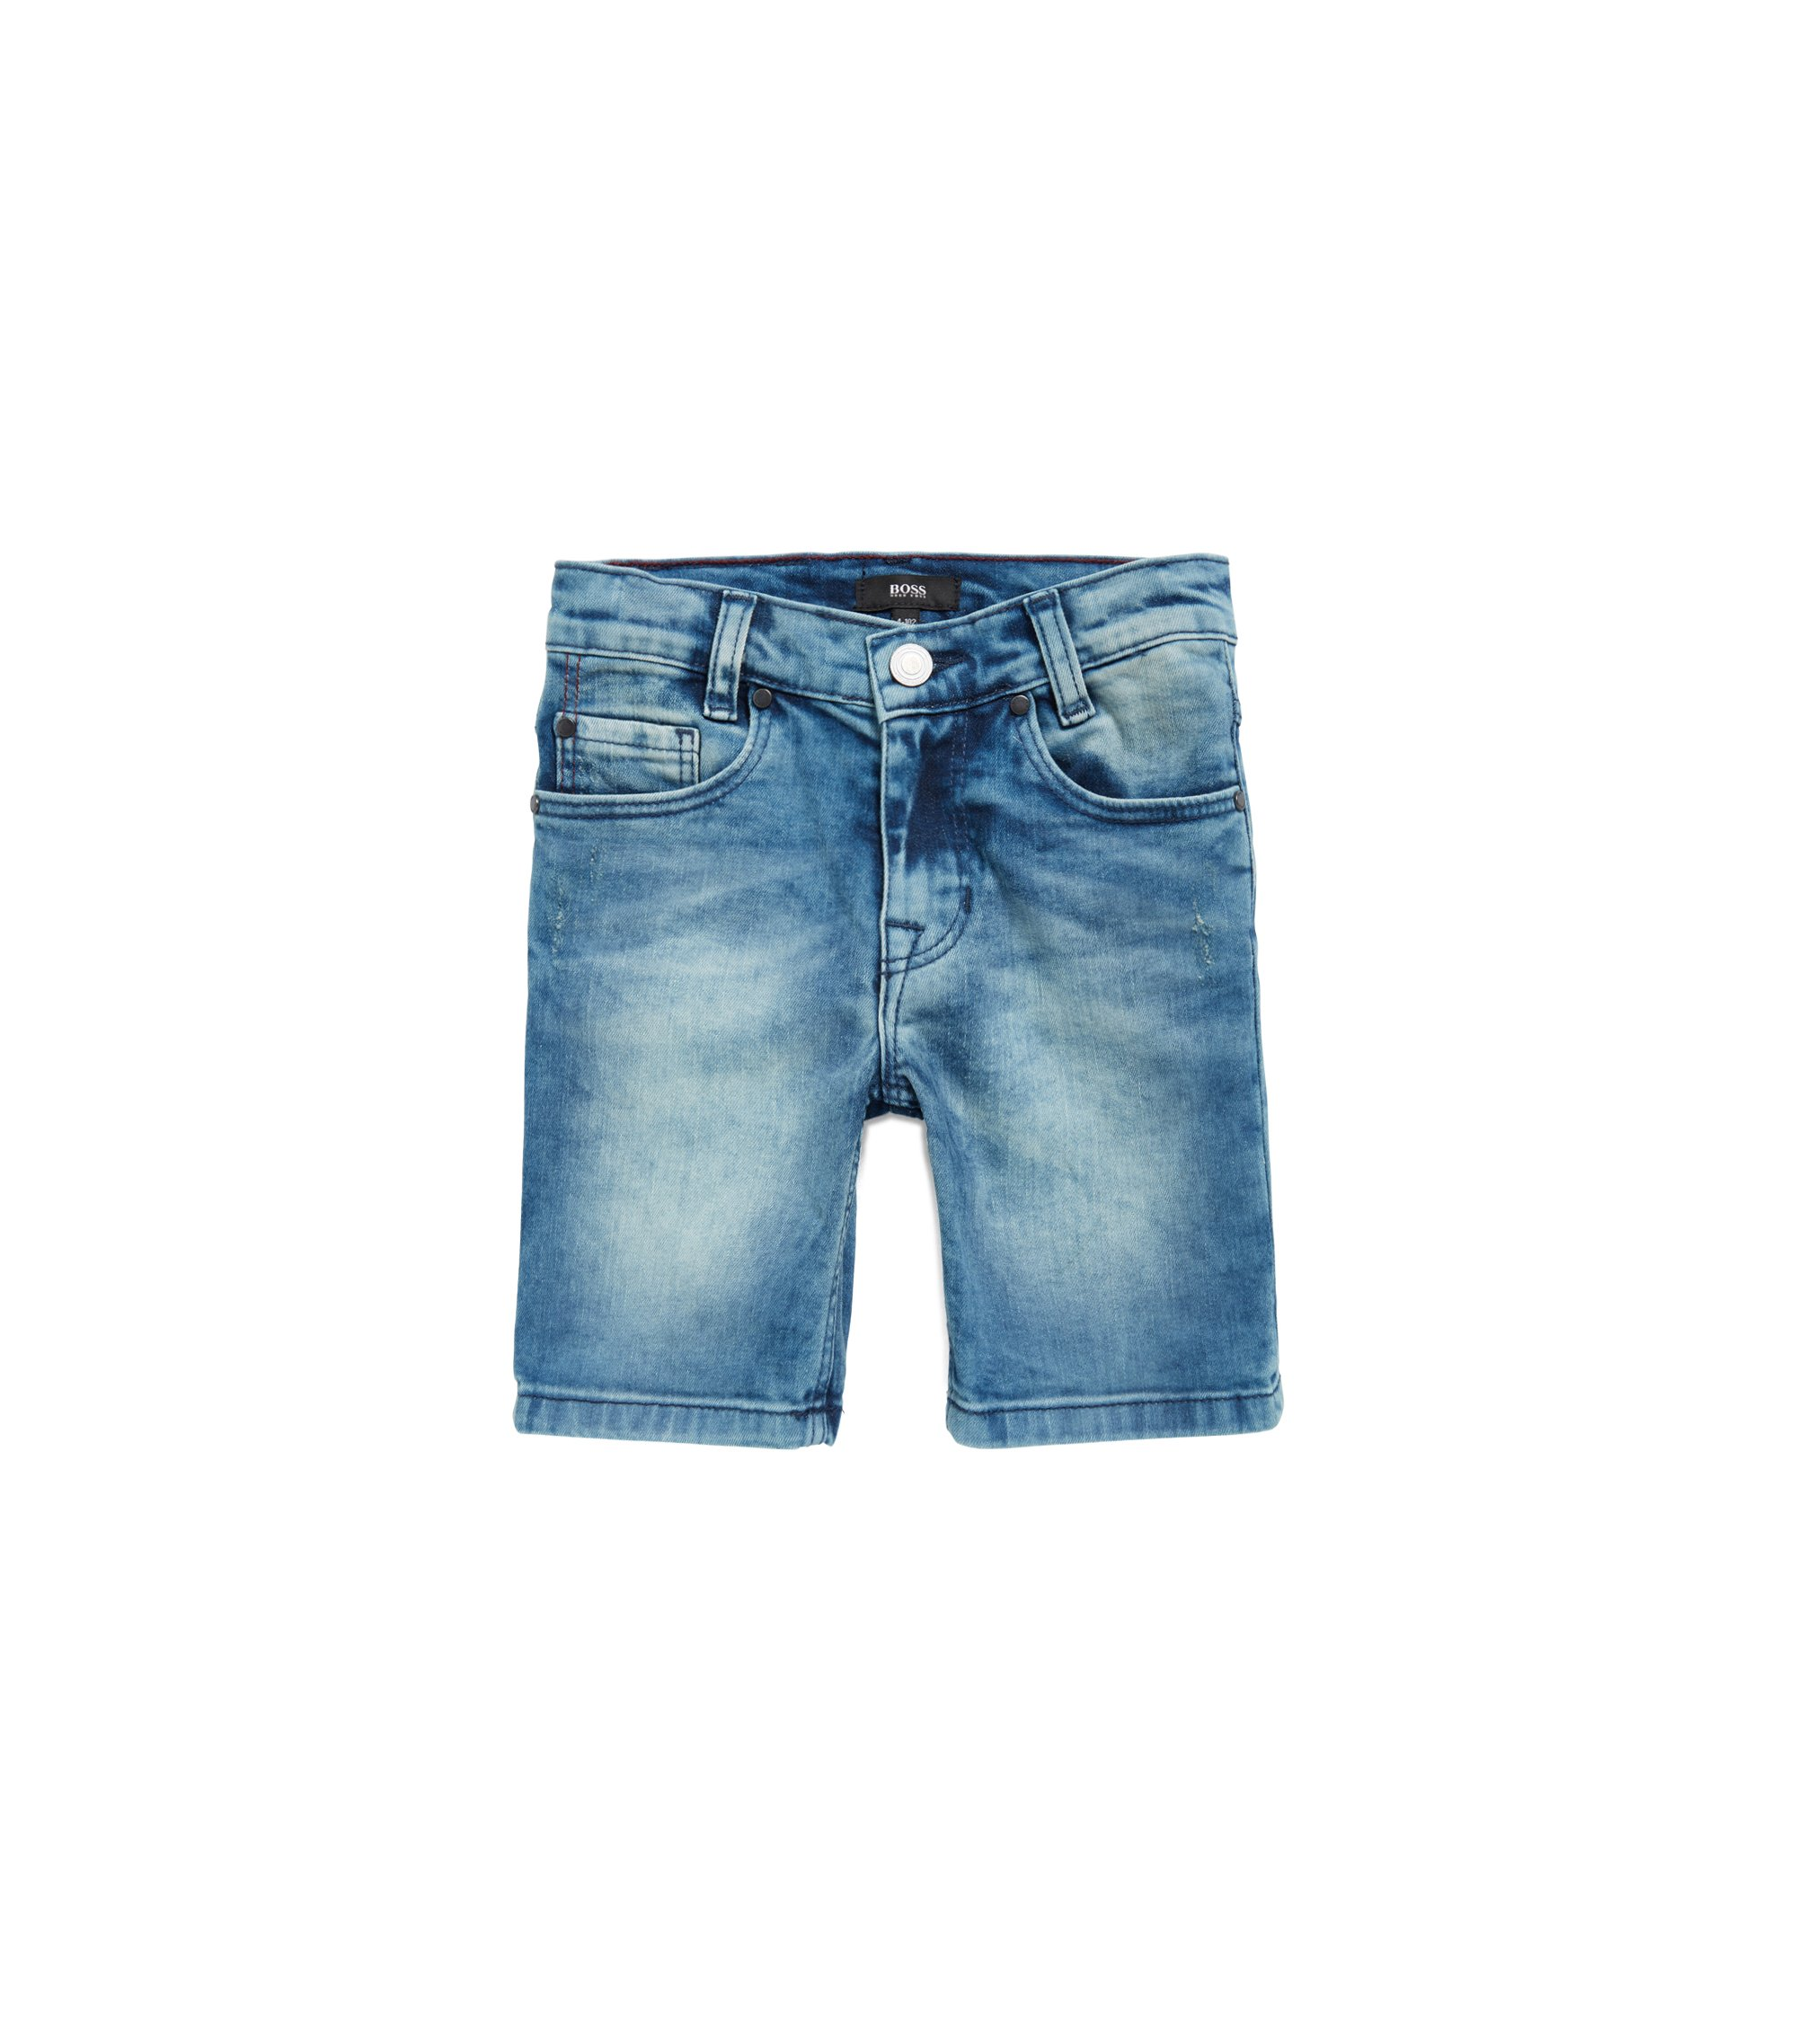 Kids' Bermuda shorts in stretch denim, Patterned